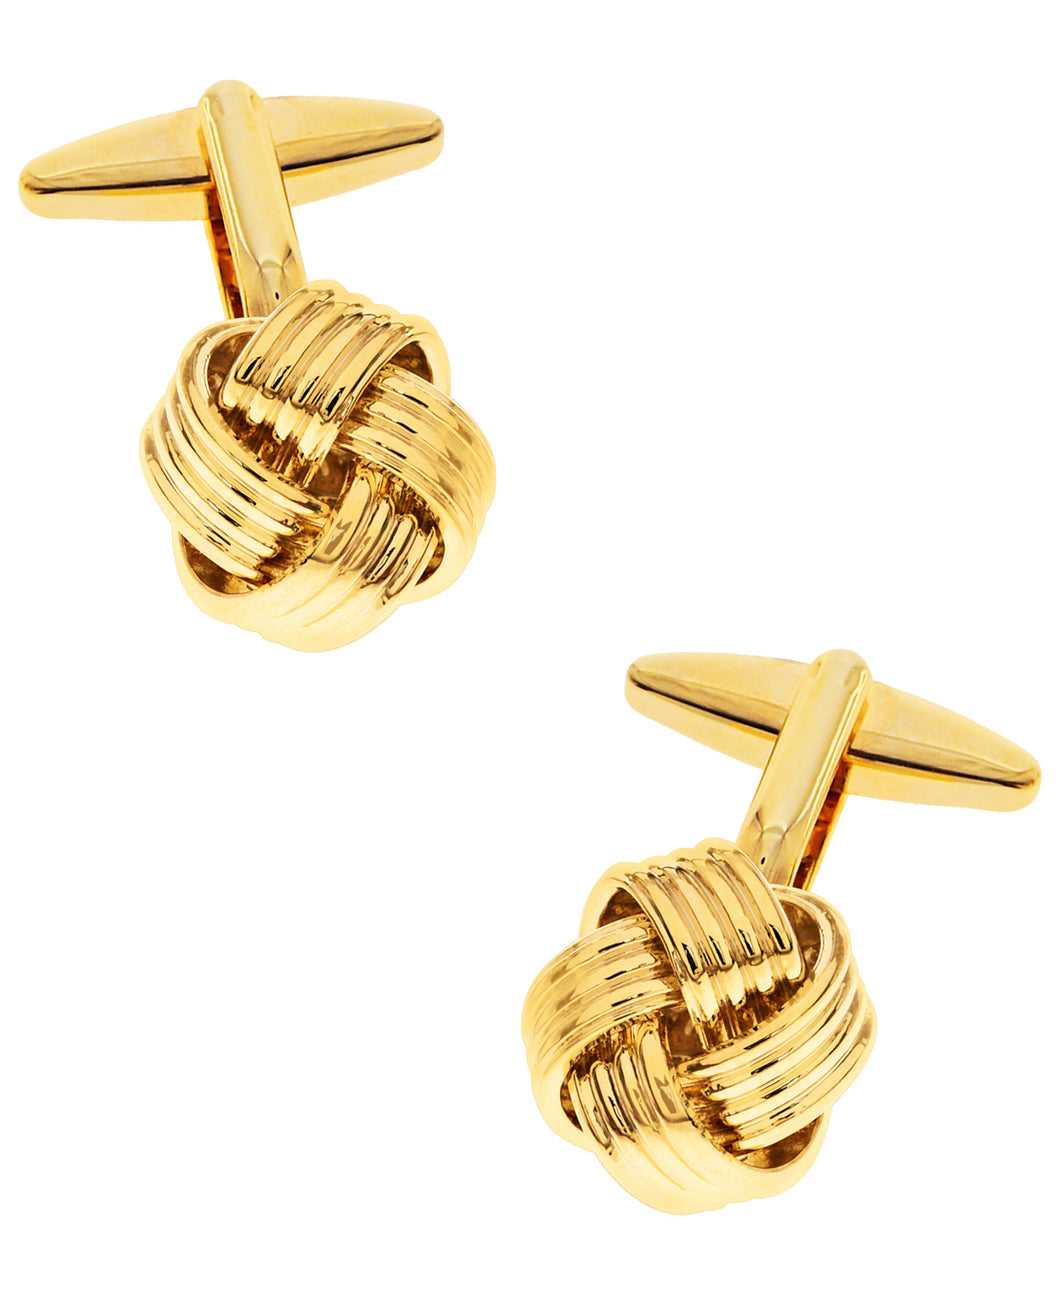 Sutton Gold-Tone Knot Cufflinks